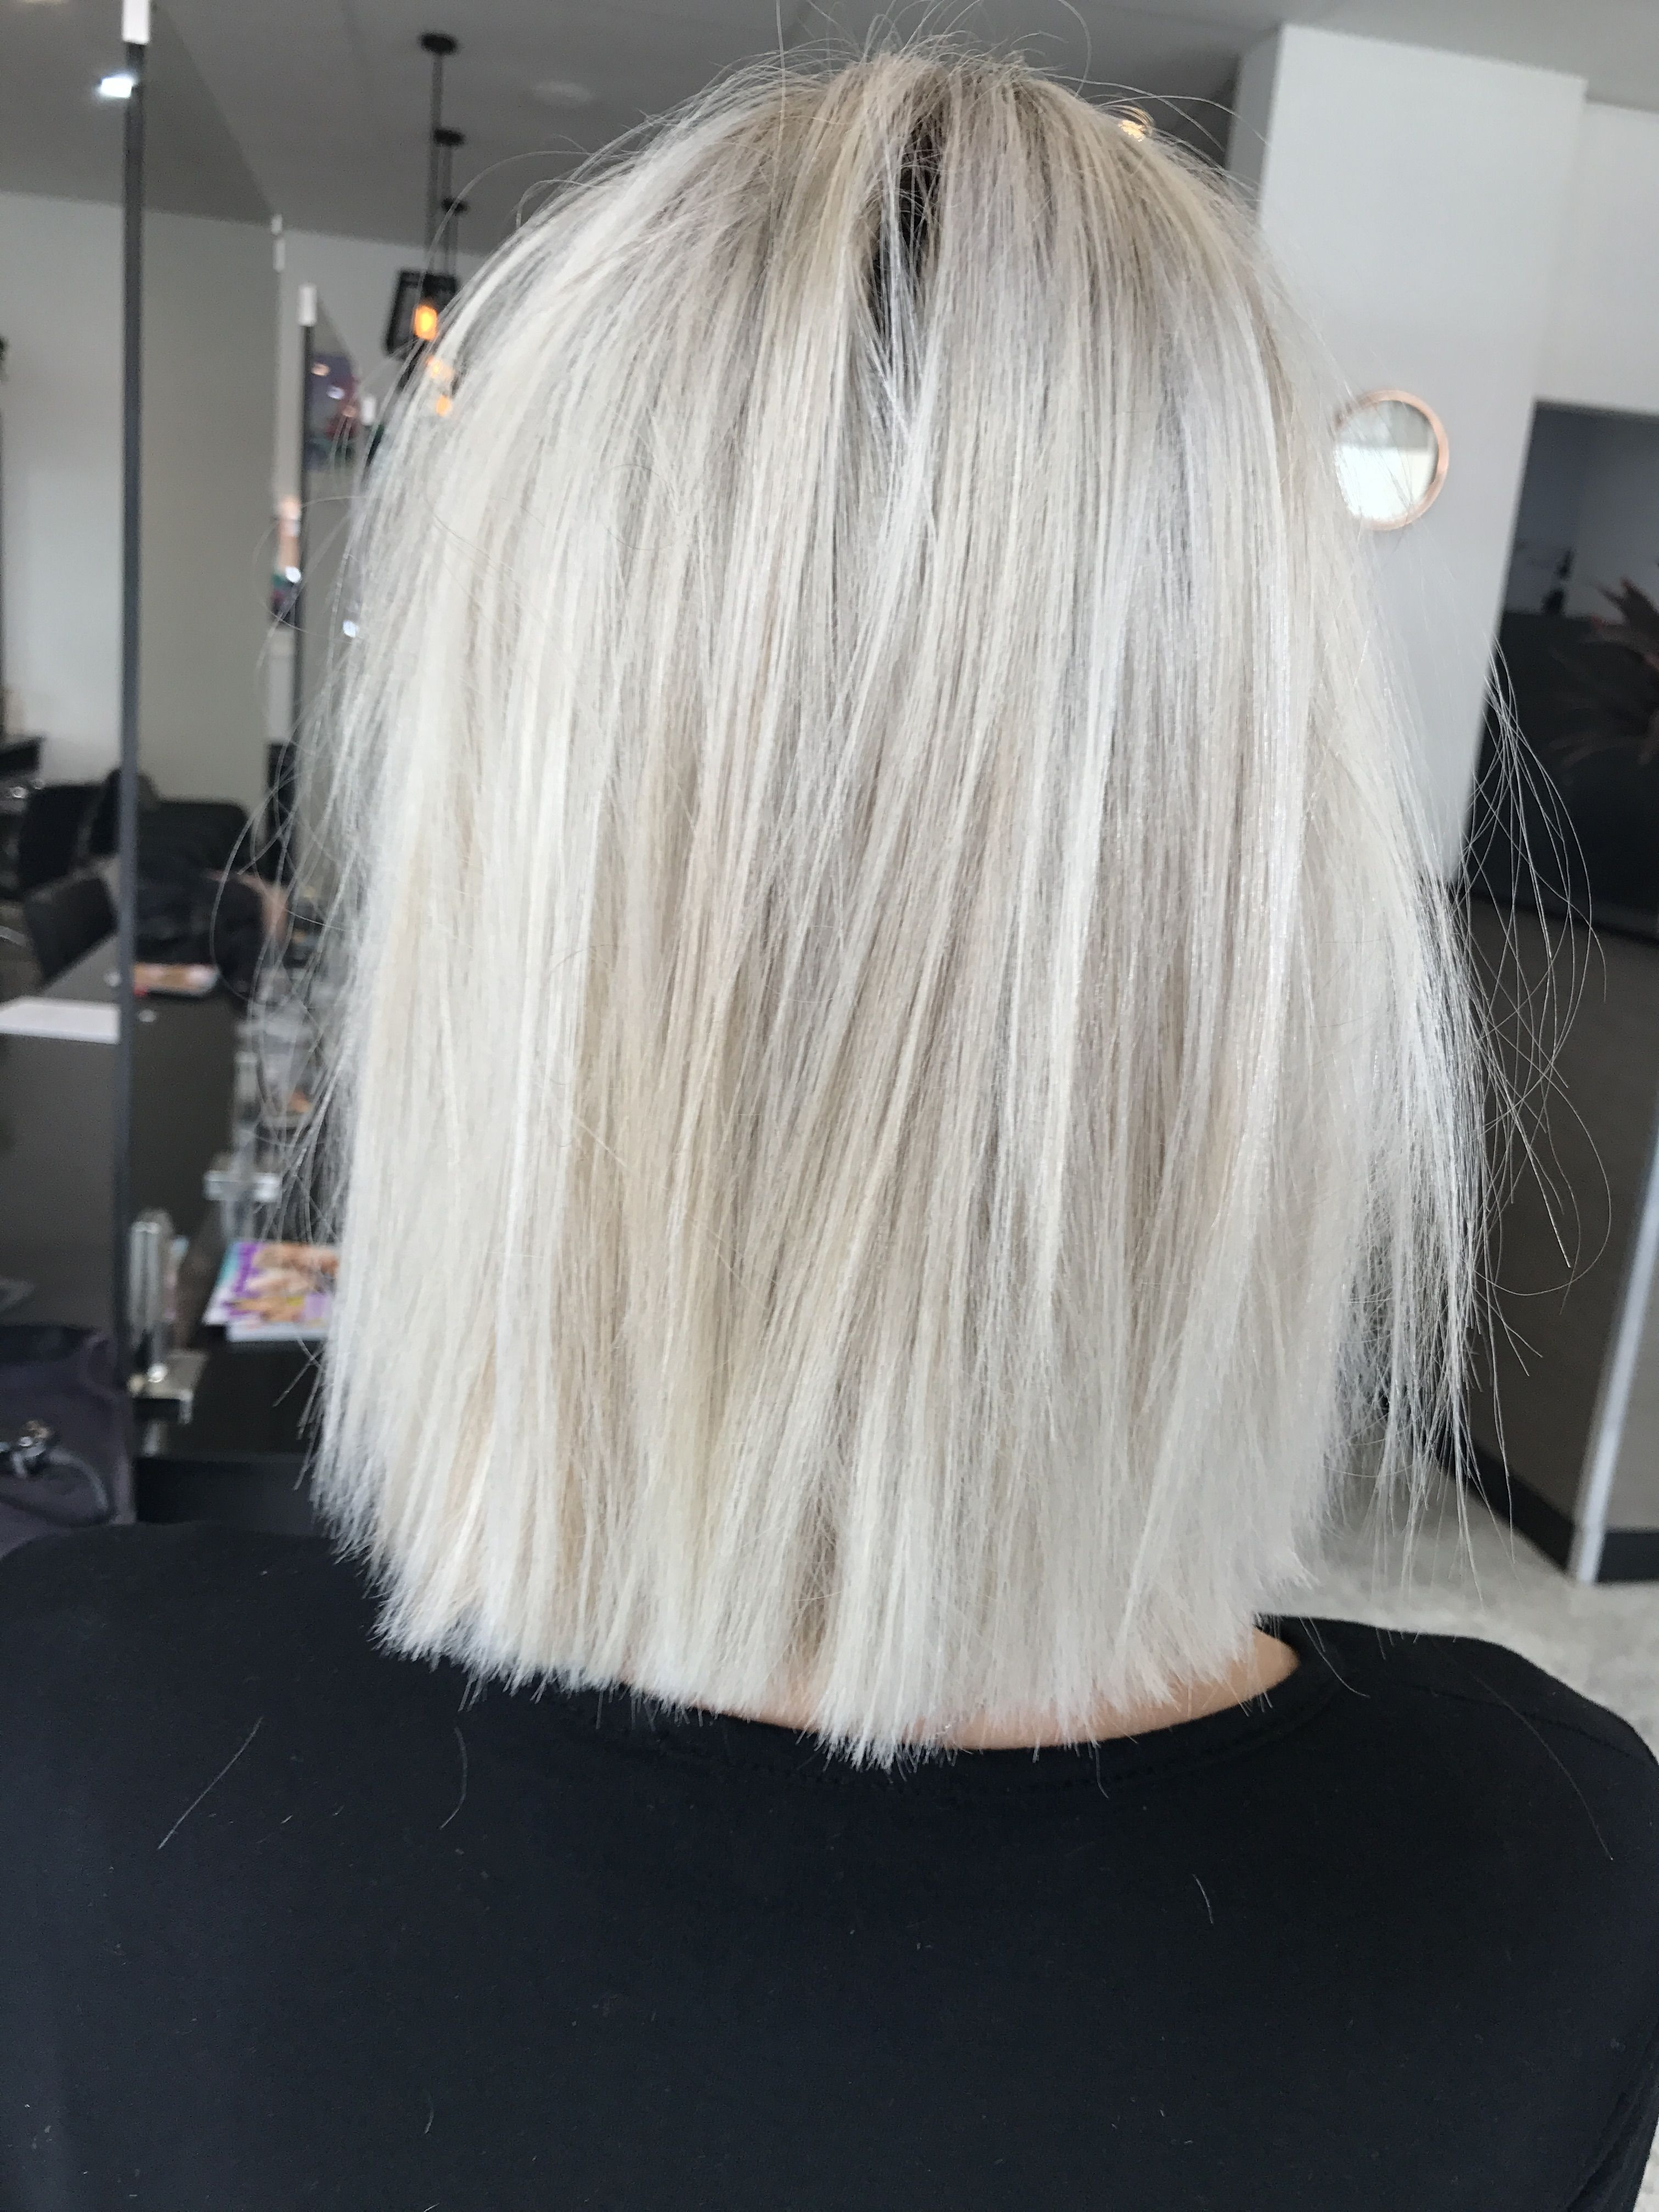 Blonde Hair Short Lob Textured Straight Hair Cut Colour Cool Ash With Trendy Sleek White Blonde Lob Hairstyles (View 4 of 20)